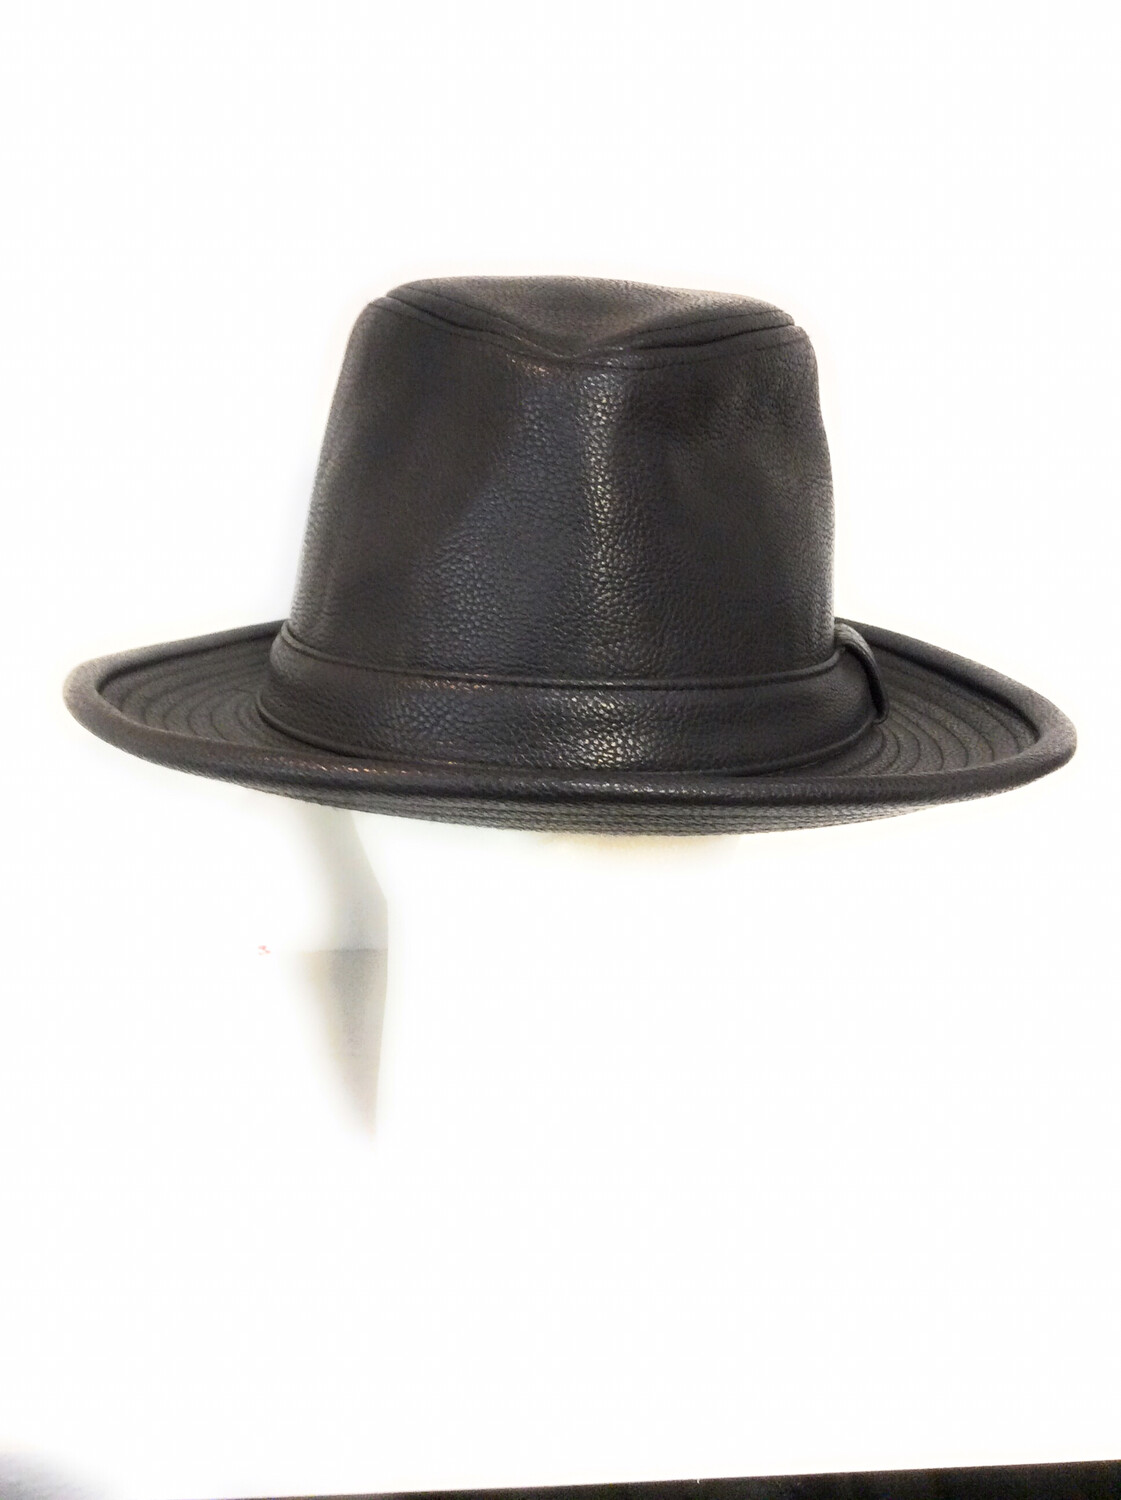 Men fedora hats Pu leather color Black AnD Brown